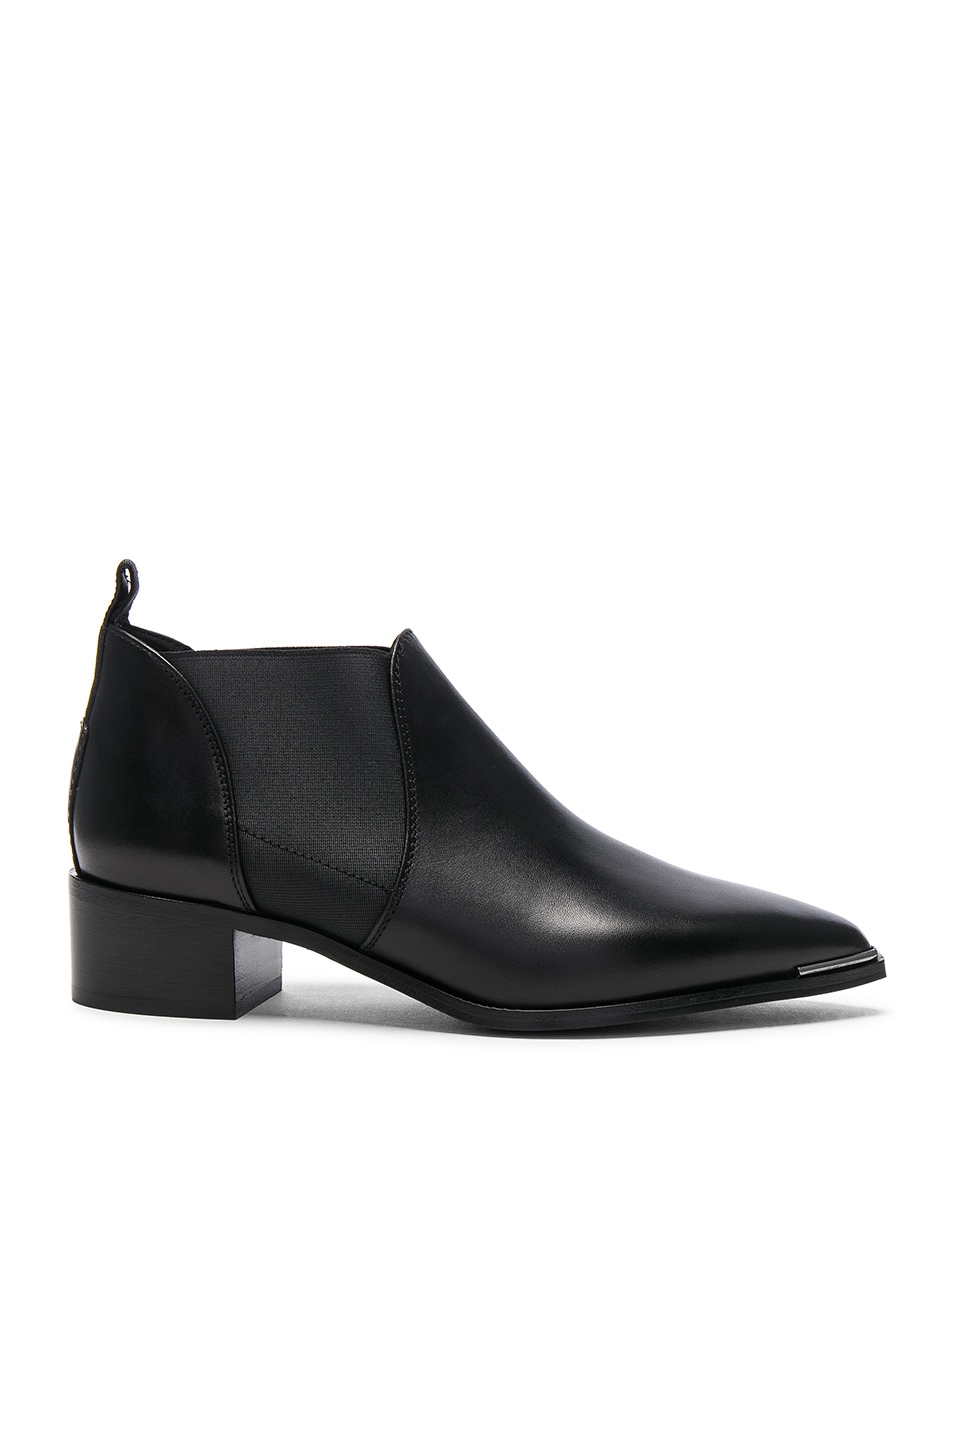 ebc046a10ed0 Image 1 of Acne Studios Leather Jenny Booties in Black